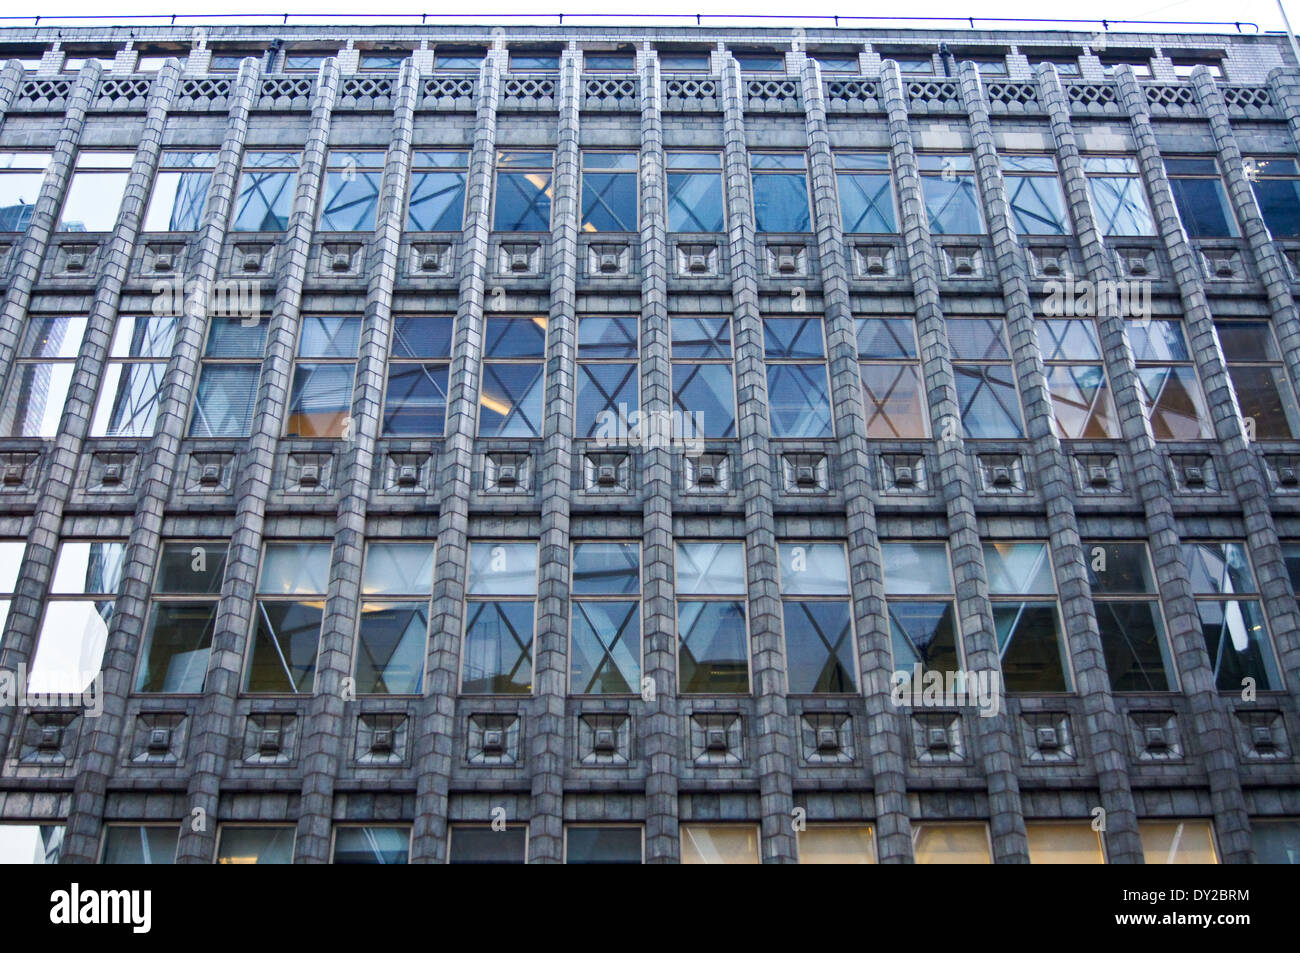 holland-house-by-hendrik-petrus-berlage-1916-bury-street-city-of-london-DY2BRM.jpg